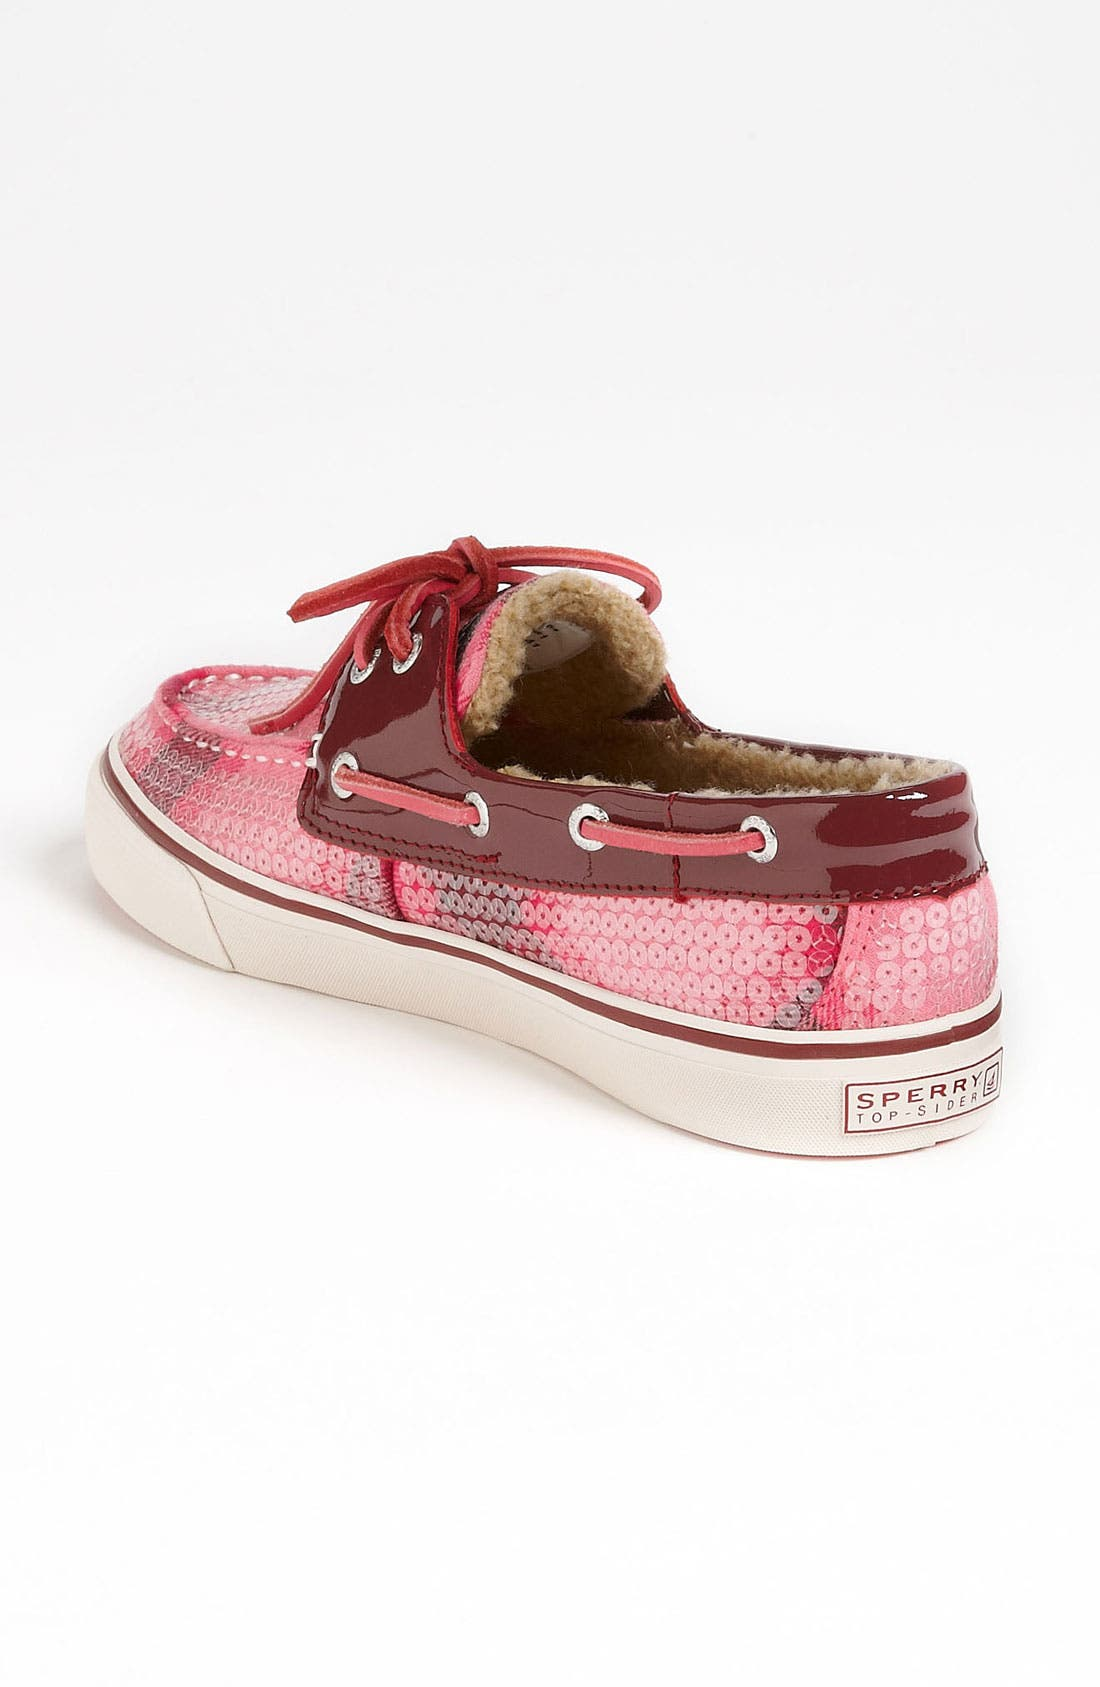 Top-Sider<sup>®</sup> 'Bahama' Sequined Boat Shoe,                             Alternate thumbnail 121, color,